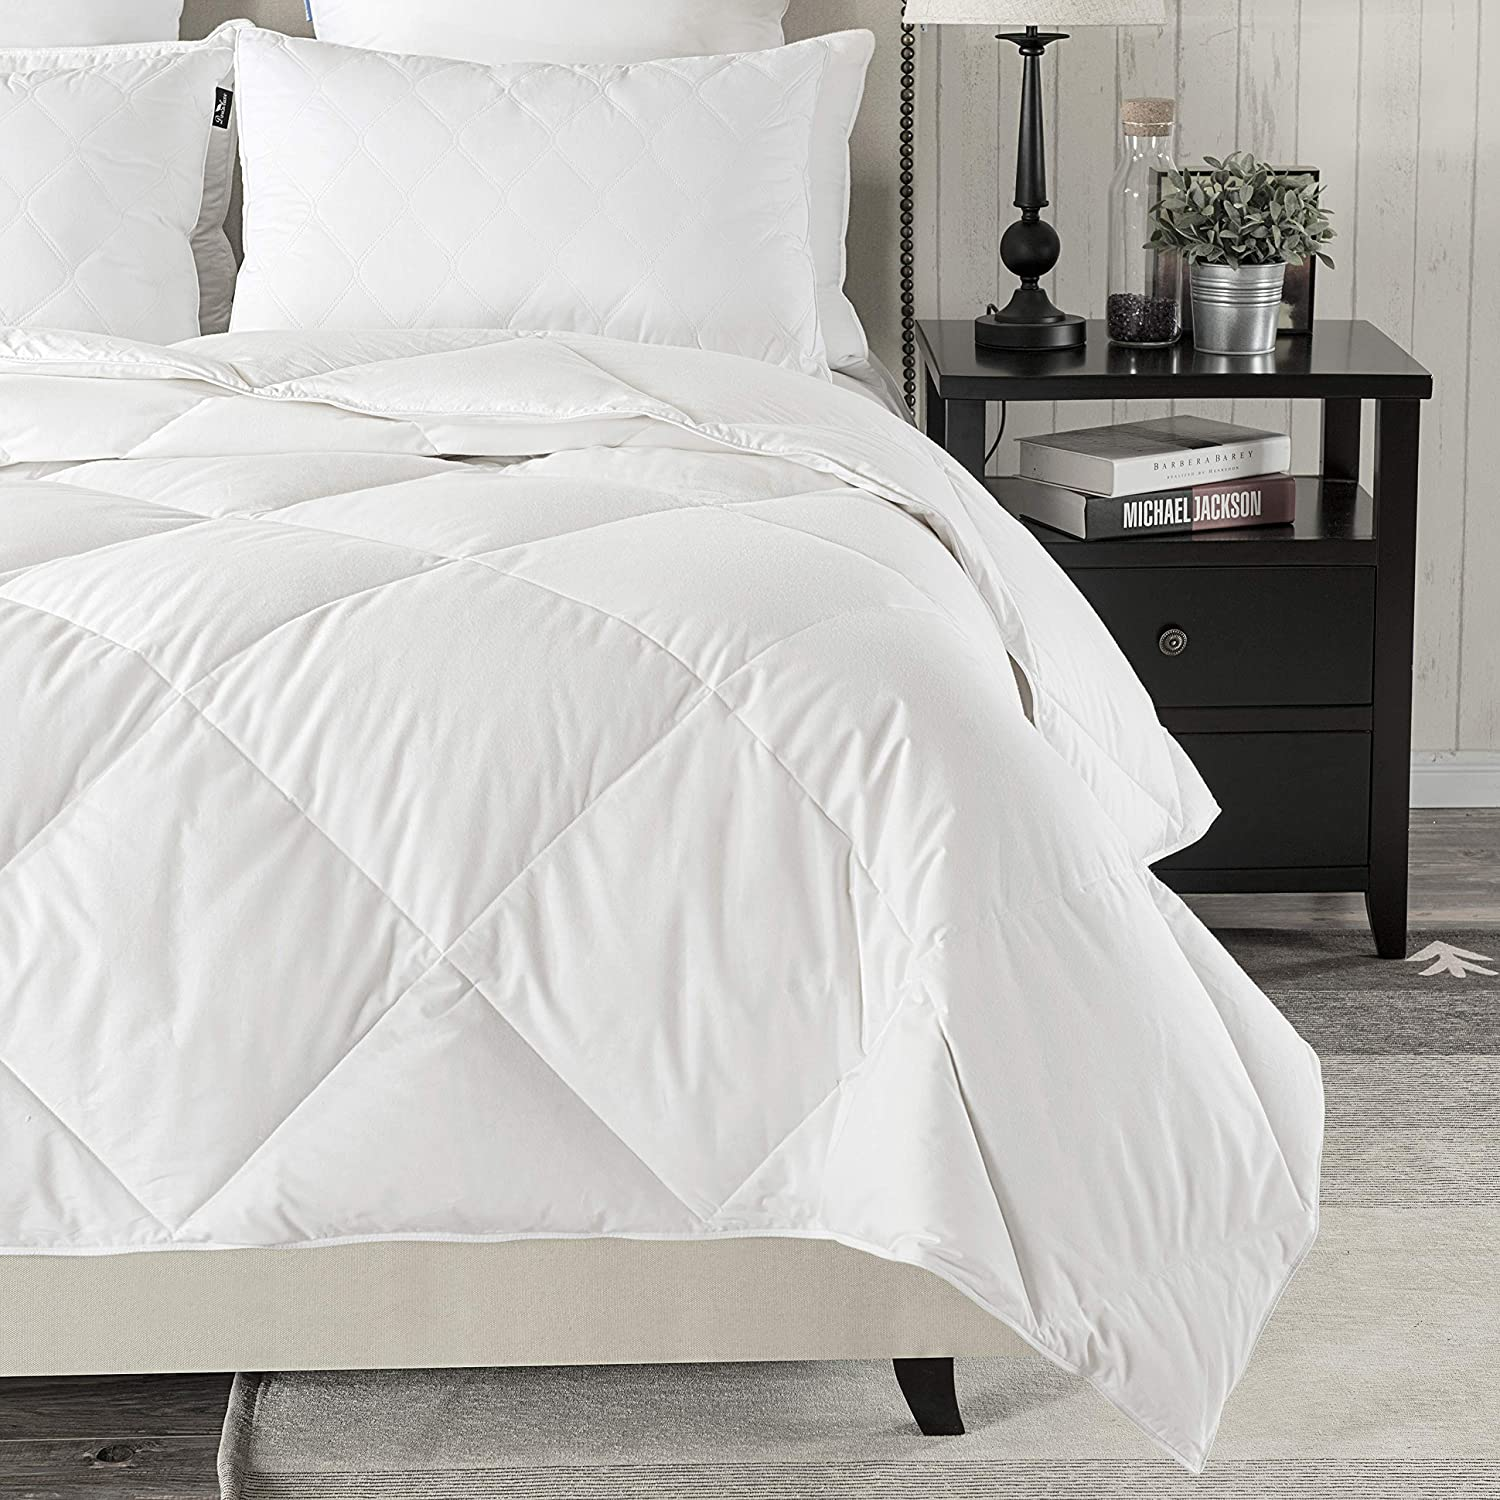 Queen,White -Summer Weight Down Duvet Inserts,230 Thread Count 550 downluxe Lightweight Down Comforter Fill Power,100/% Cotton Shell Down Proof with Tabs